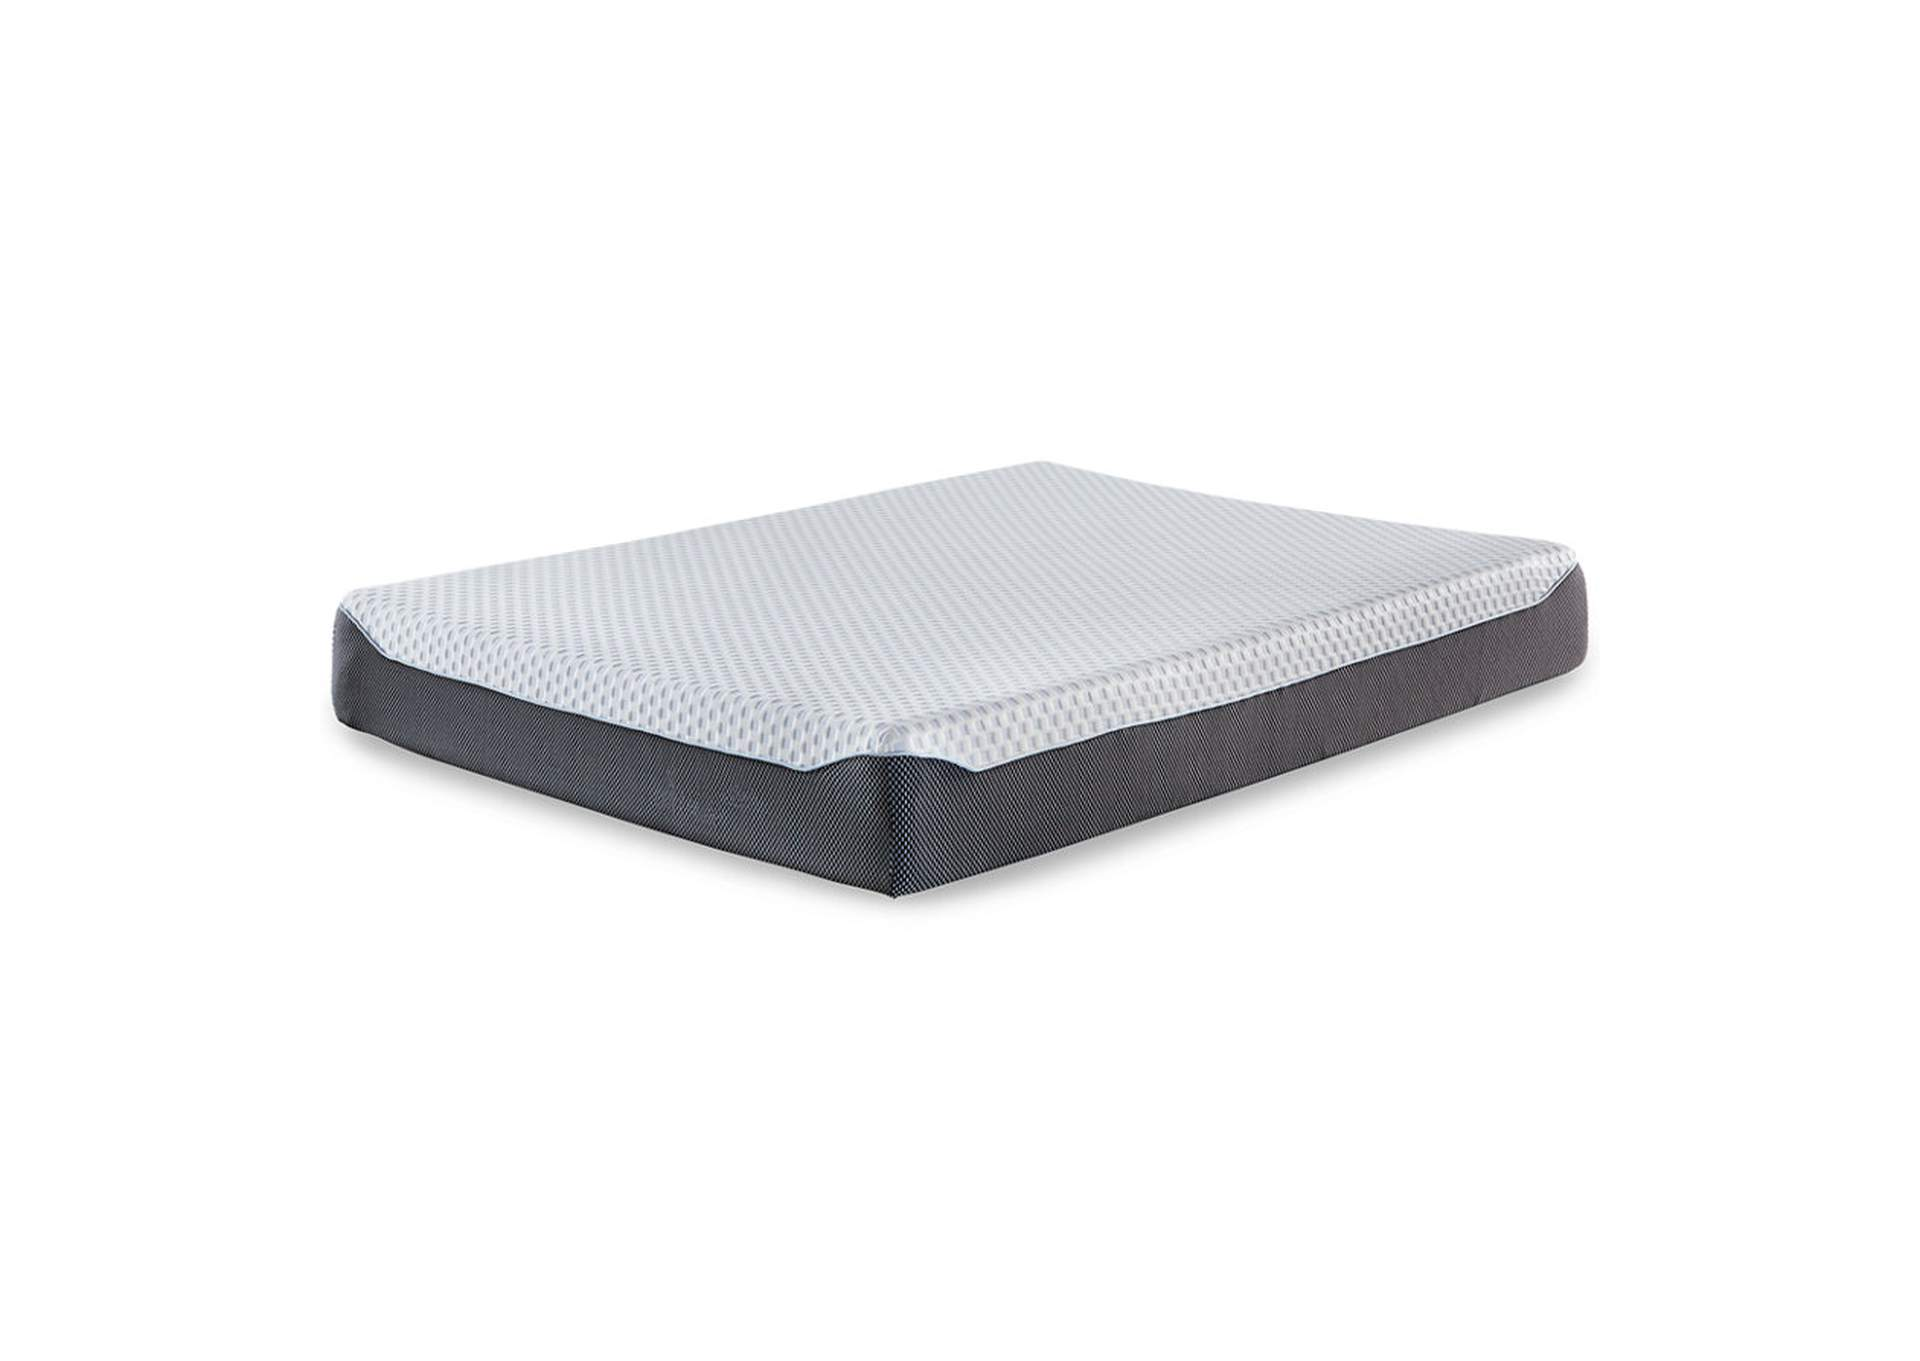 Chime Elite 10 Inch Memory Foam Full Mattress,Direct To Consumer Express